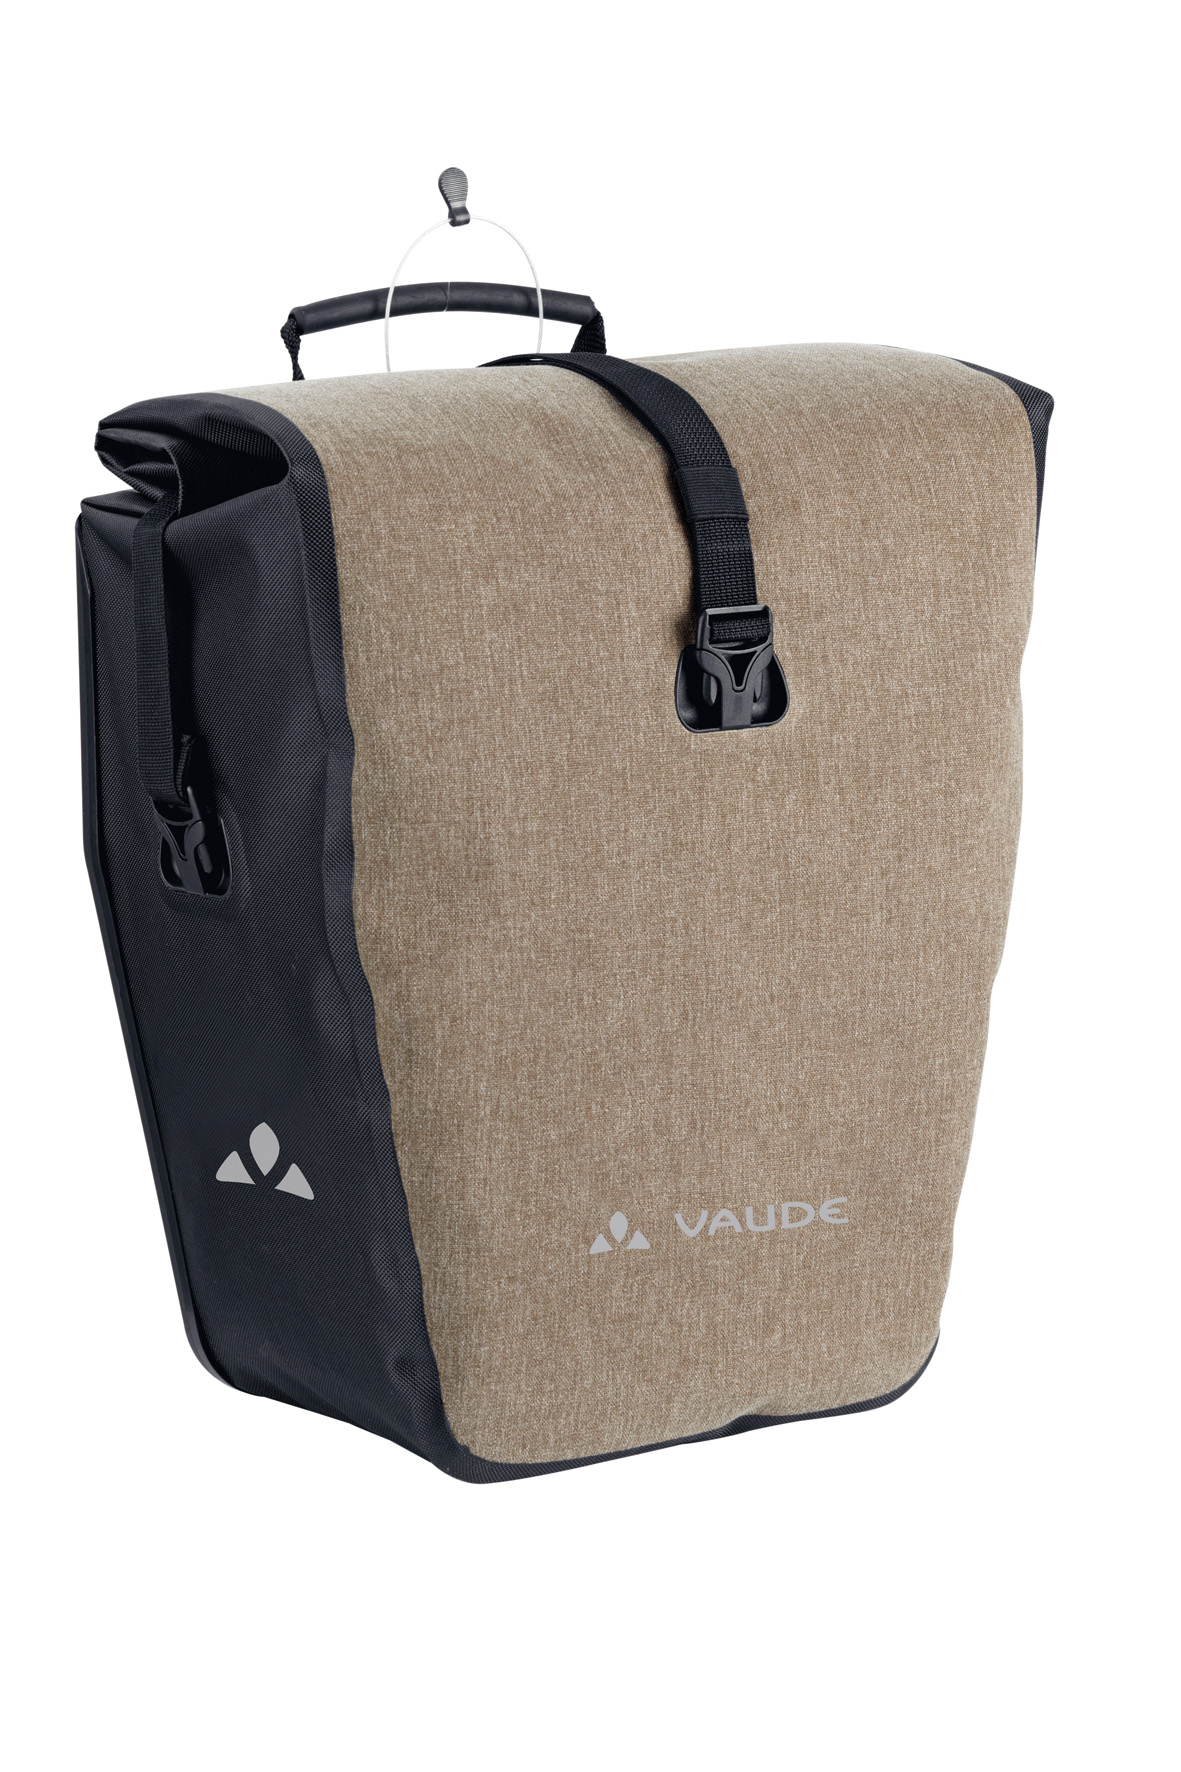 VAUDE Aqua Deluxe Single wood/black  - schneider-sports